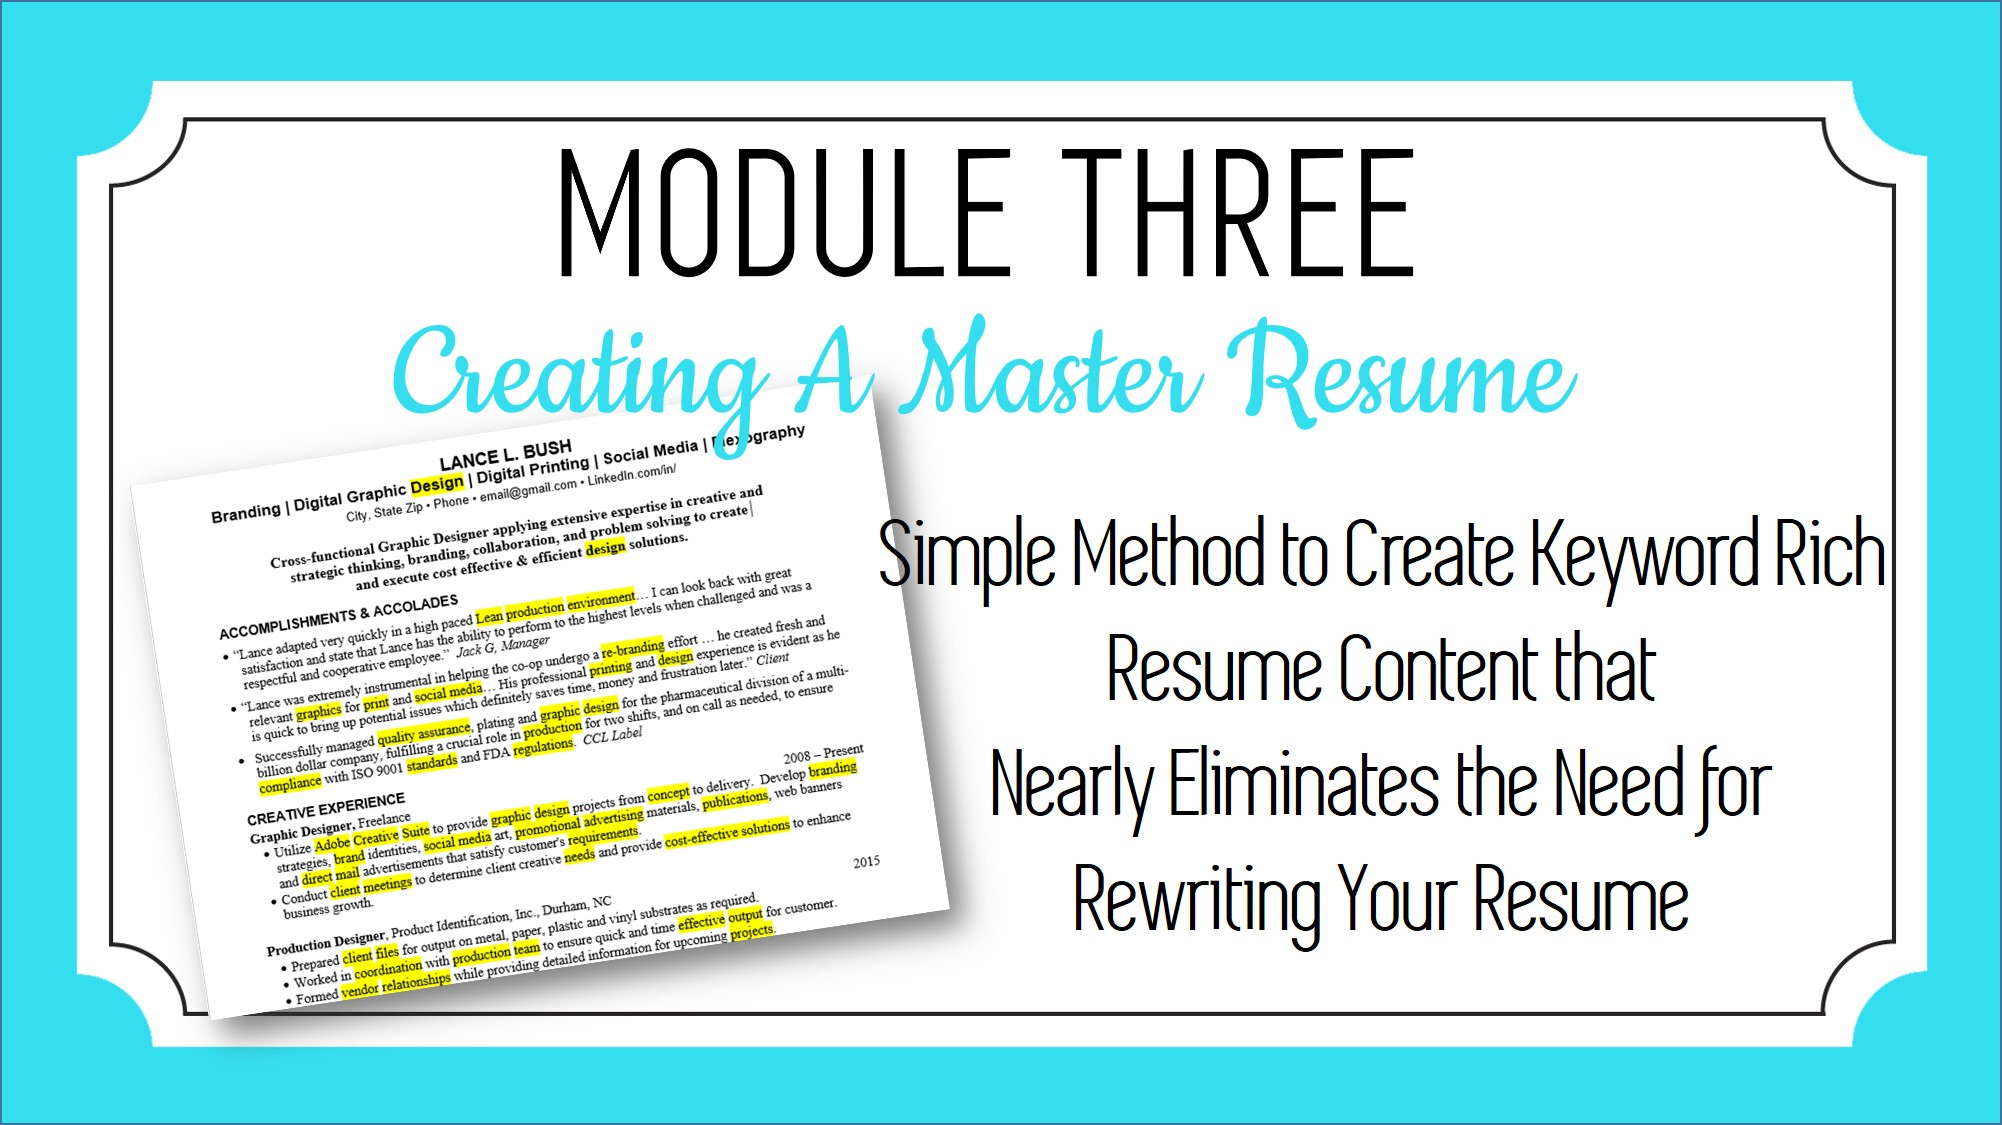 Resume Rewrite Service Free Writing Essays Services Uk Smp Fertility Rewriting Your